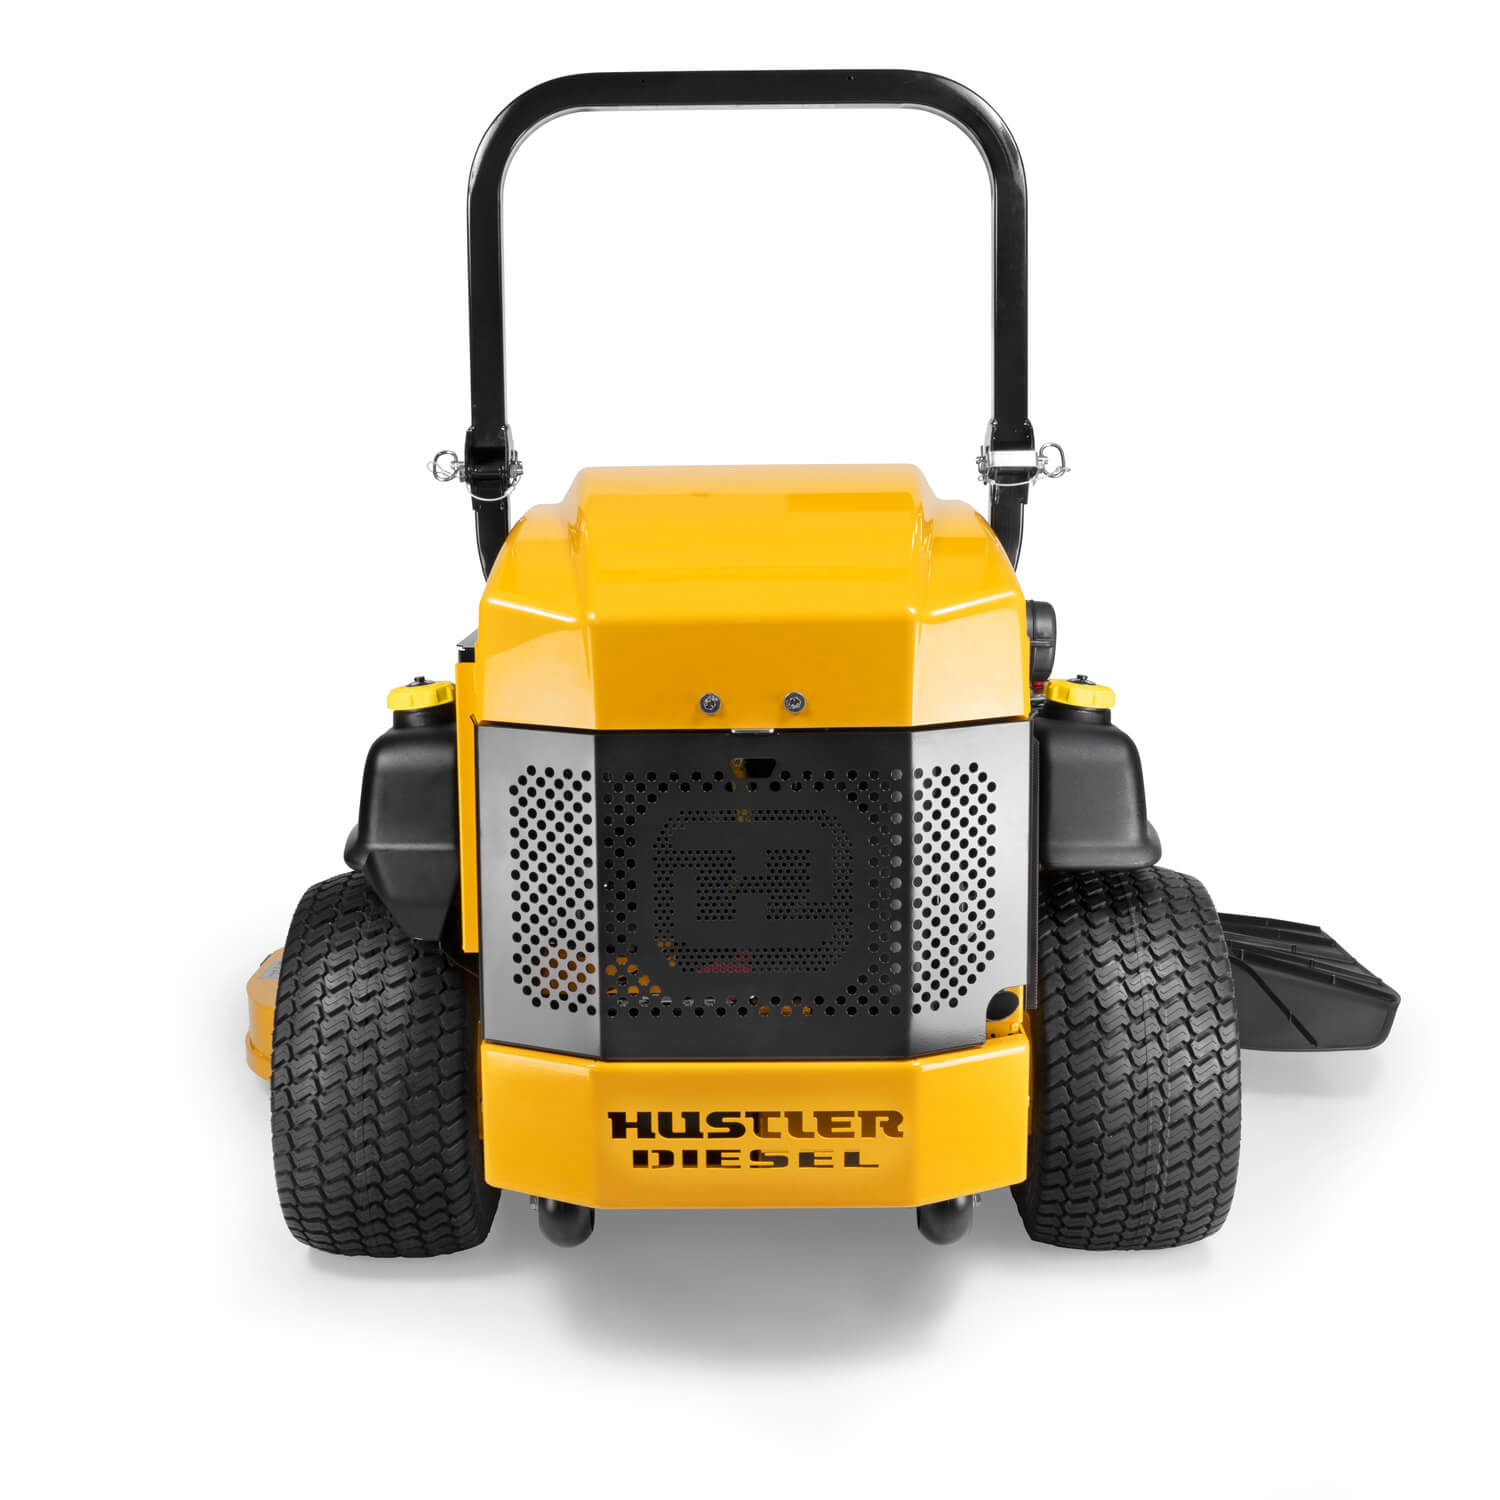 Image of the rear of a yellow mower